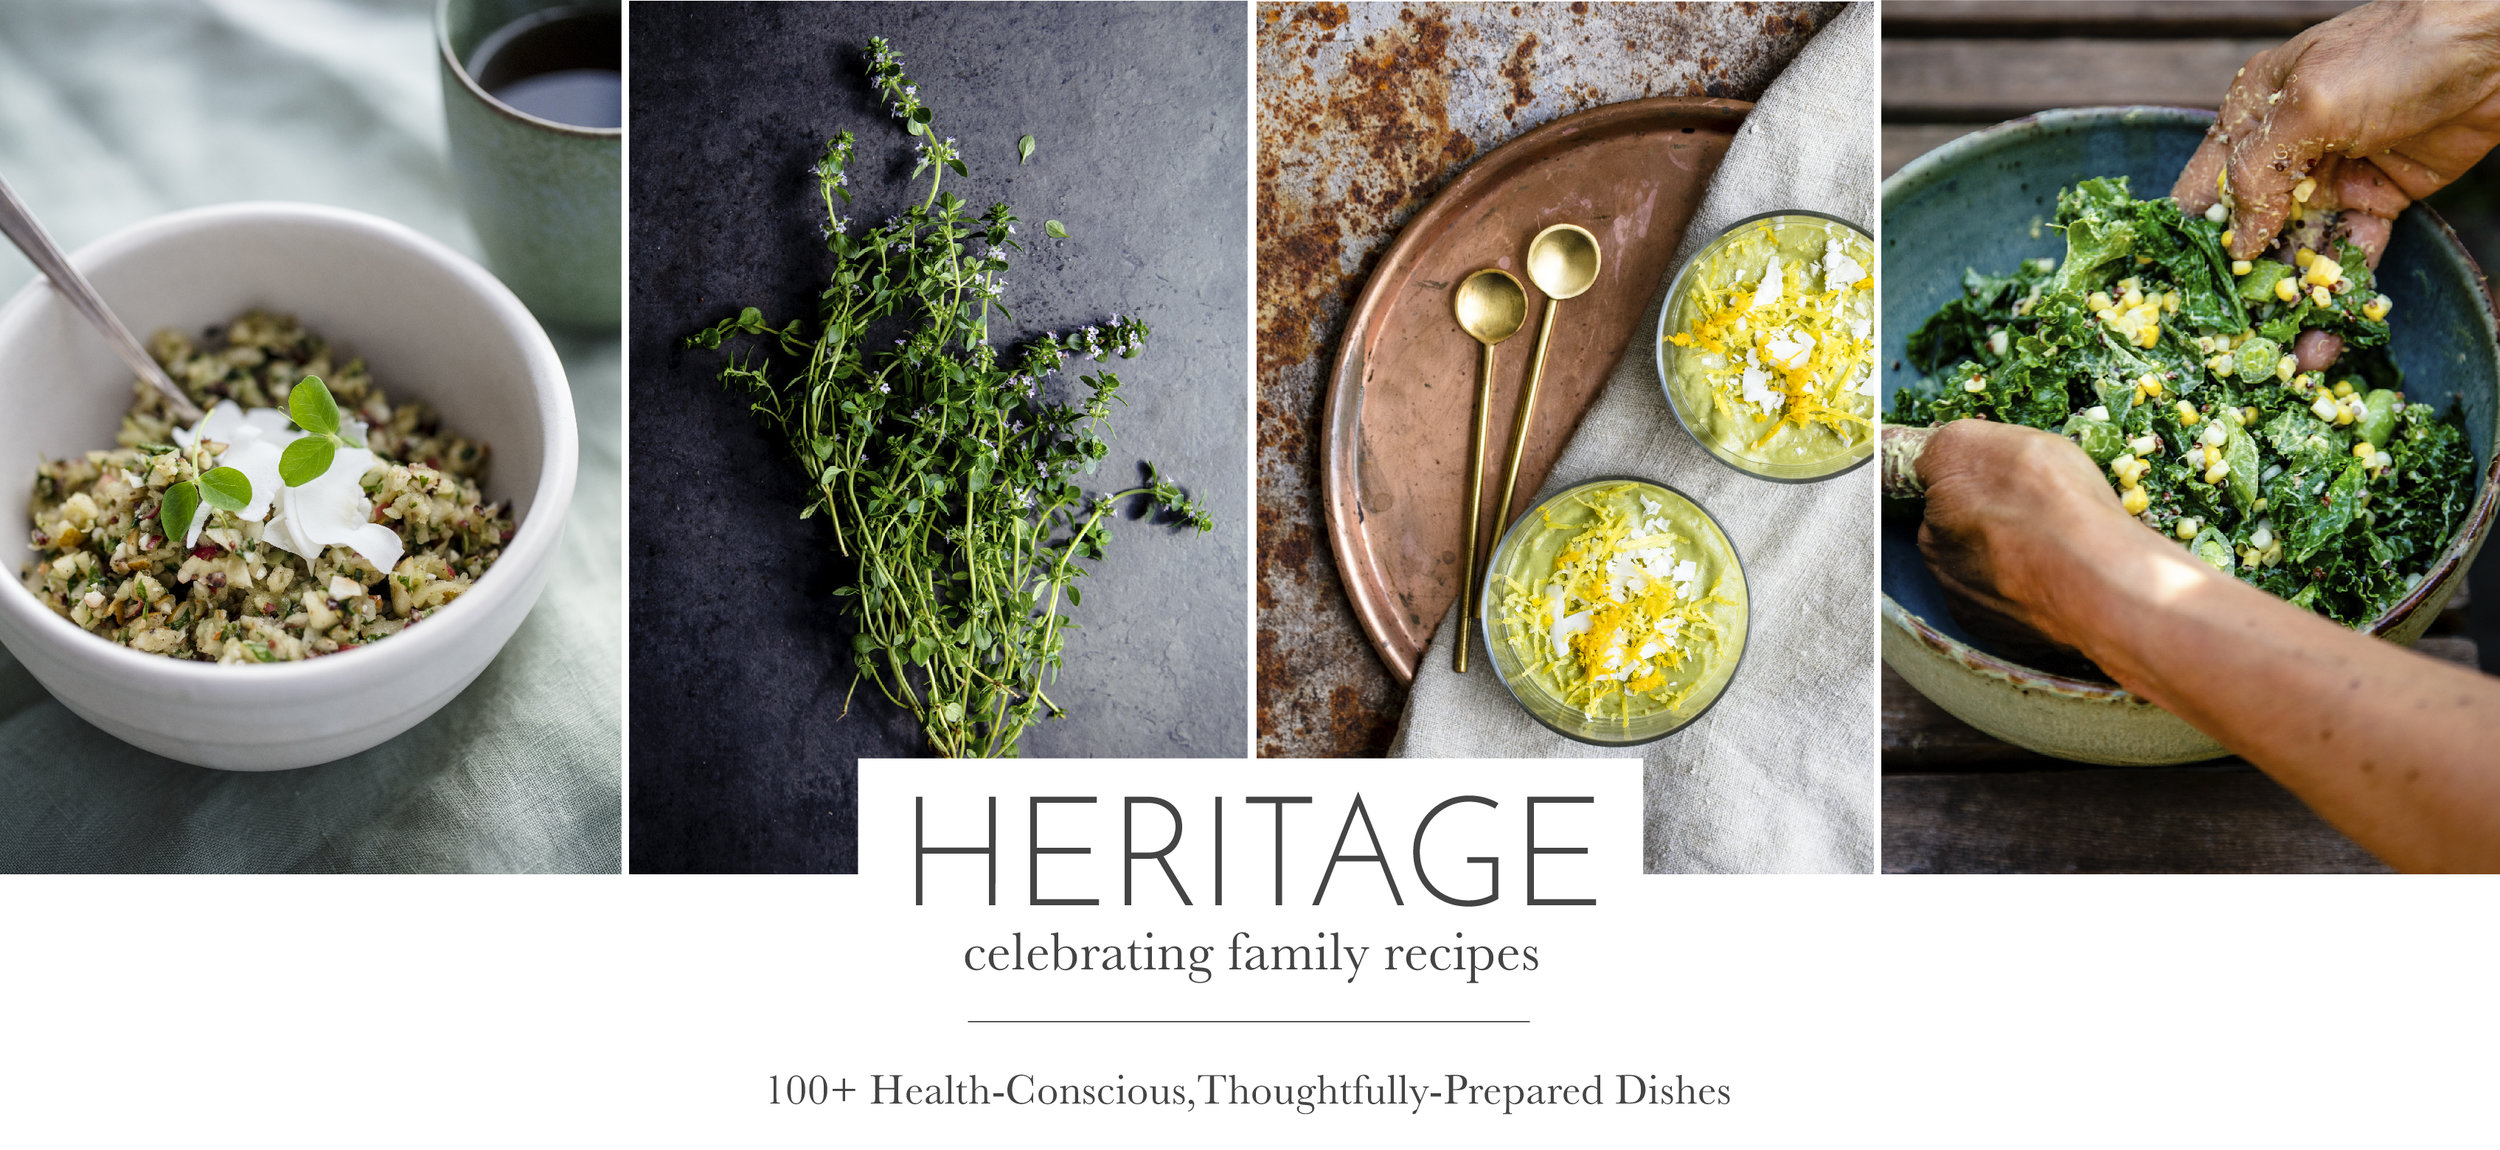 Heritage-Banner-Website-01.jpg